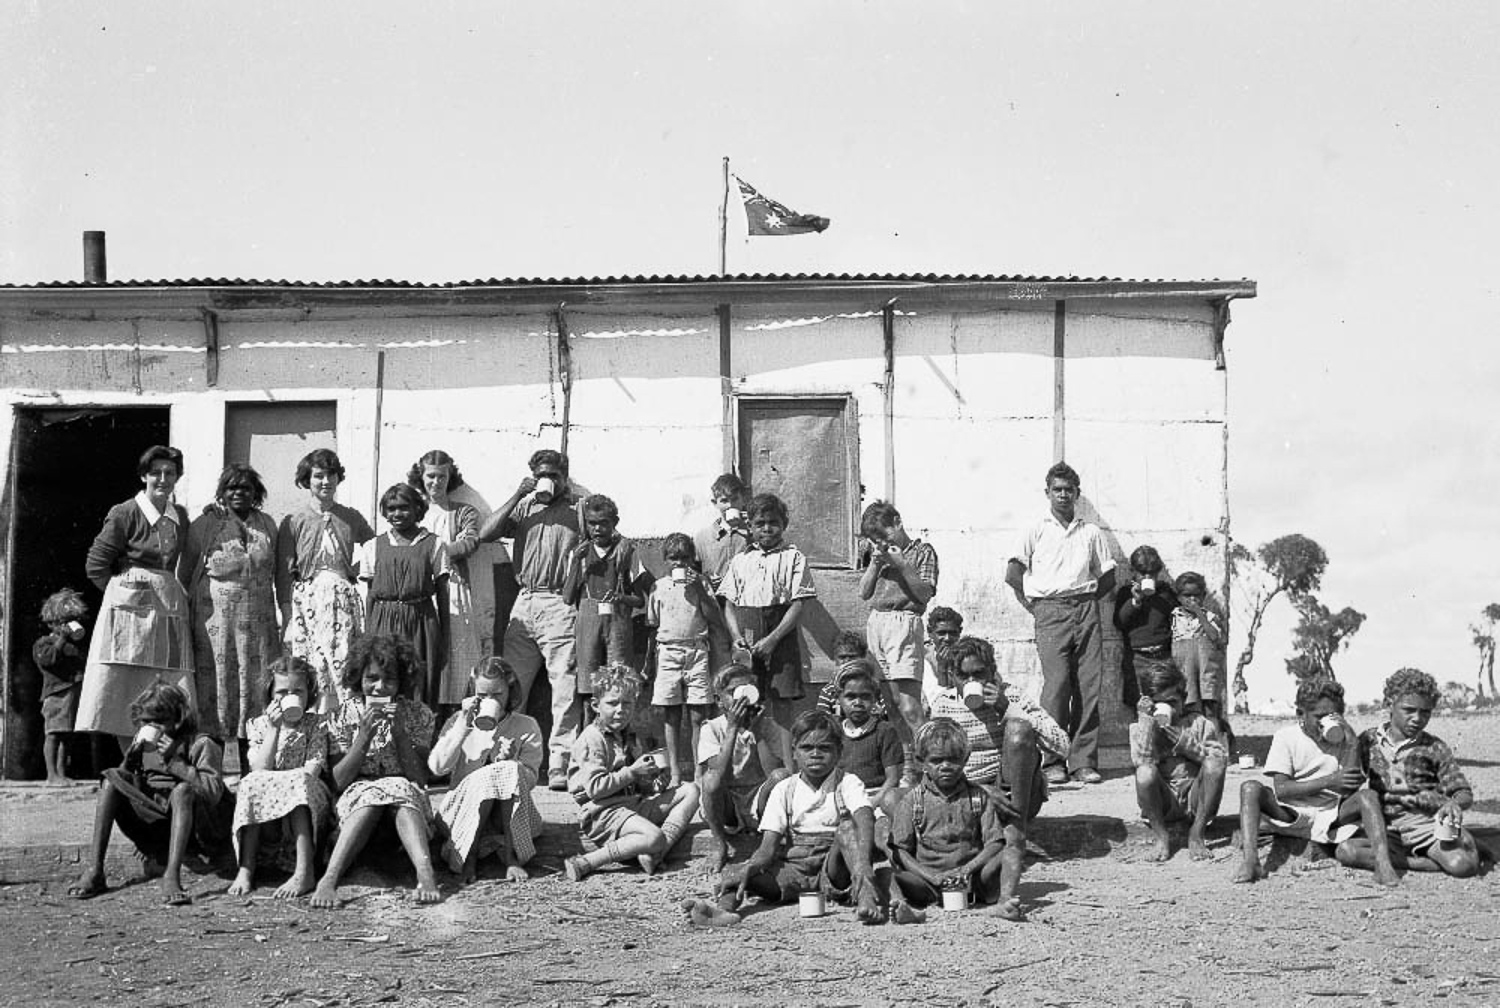 'Cocoa time' at Cundeelee mission, outside the kitchen under the Australian flag. The Cundeelee mission would be eventually closed in 1985, and in 1986, elders would return to their original homelands on Spinifex Country to the east, and establish the community of Tjuntjuntjara.